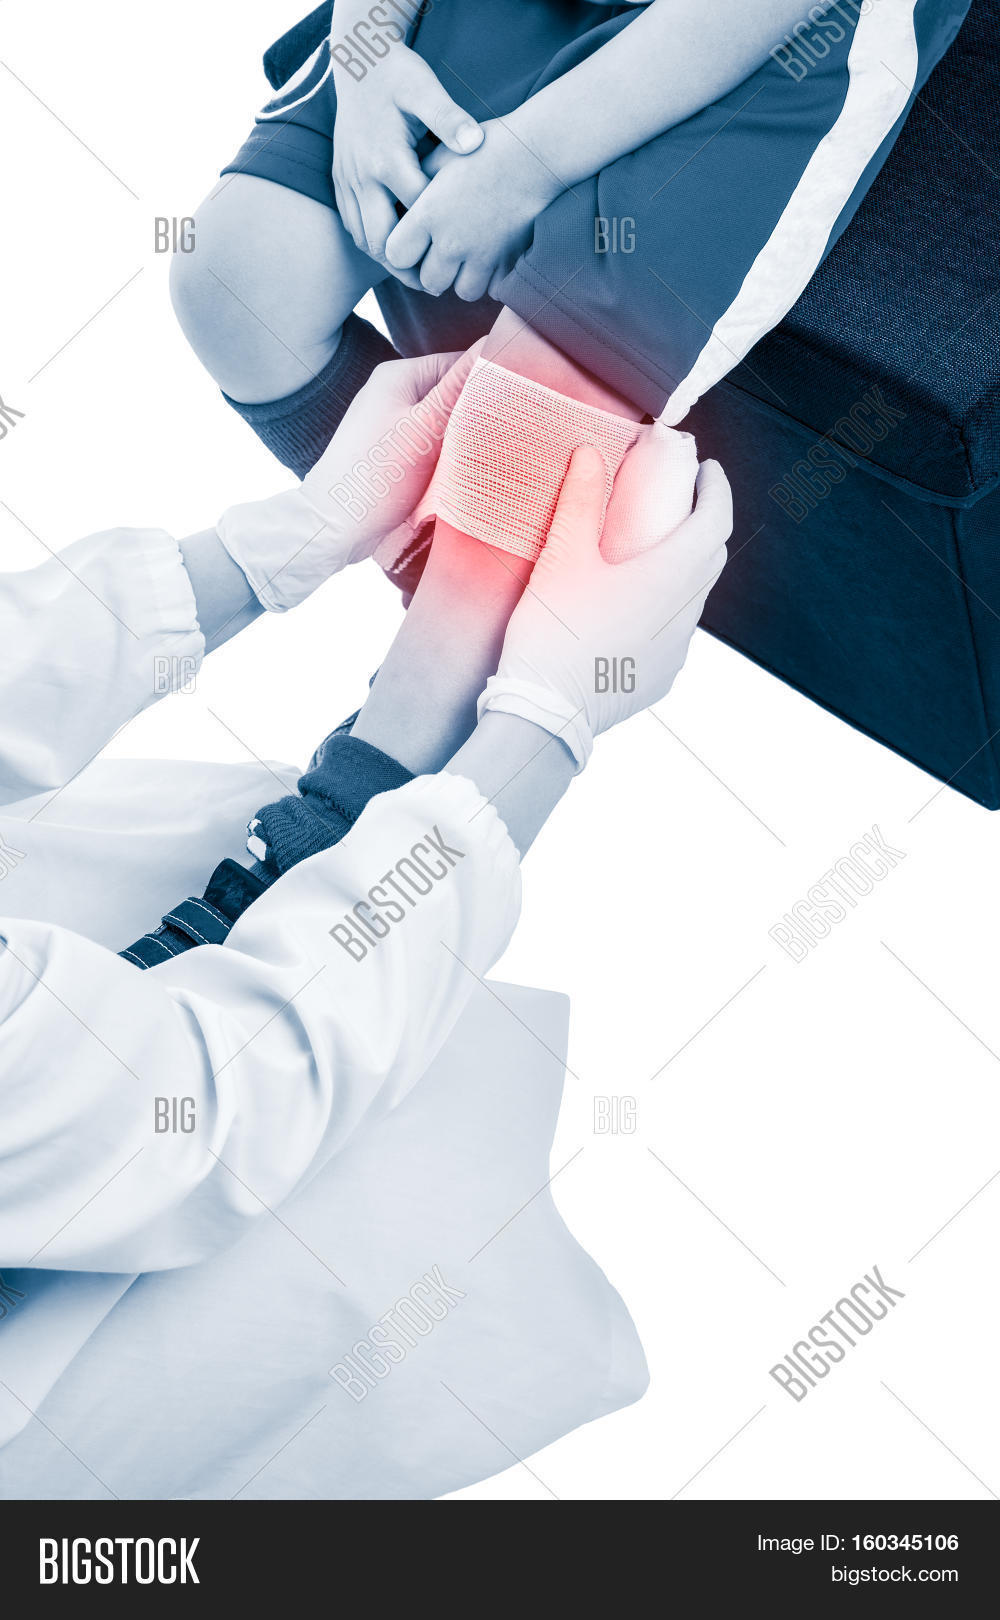 Sports Injury Doctor Image Photo Free Trial Bigstock